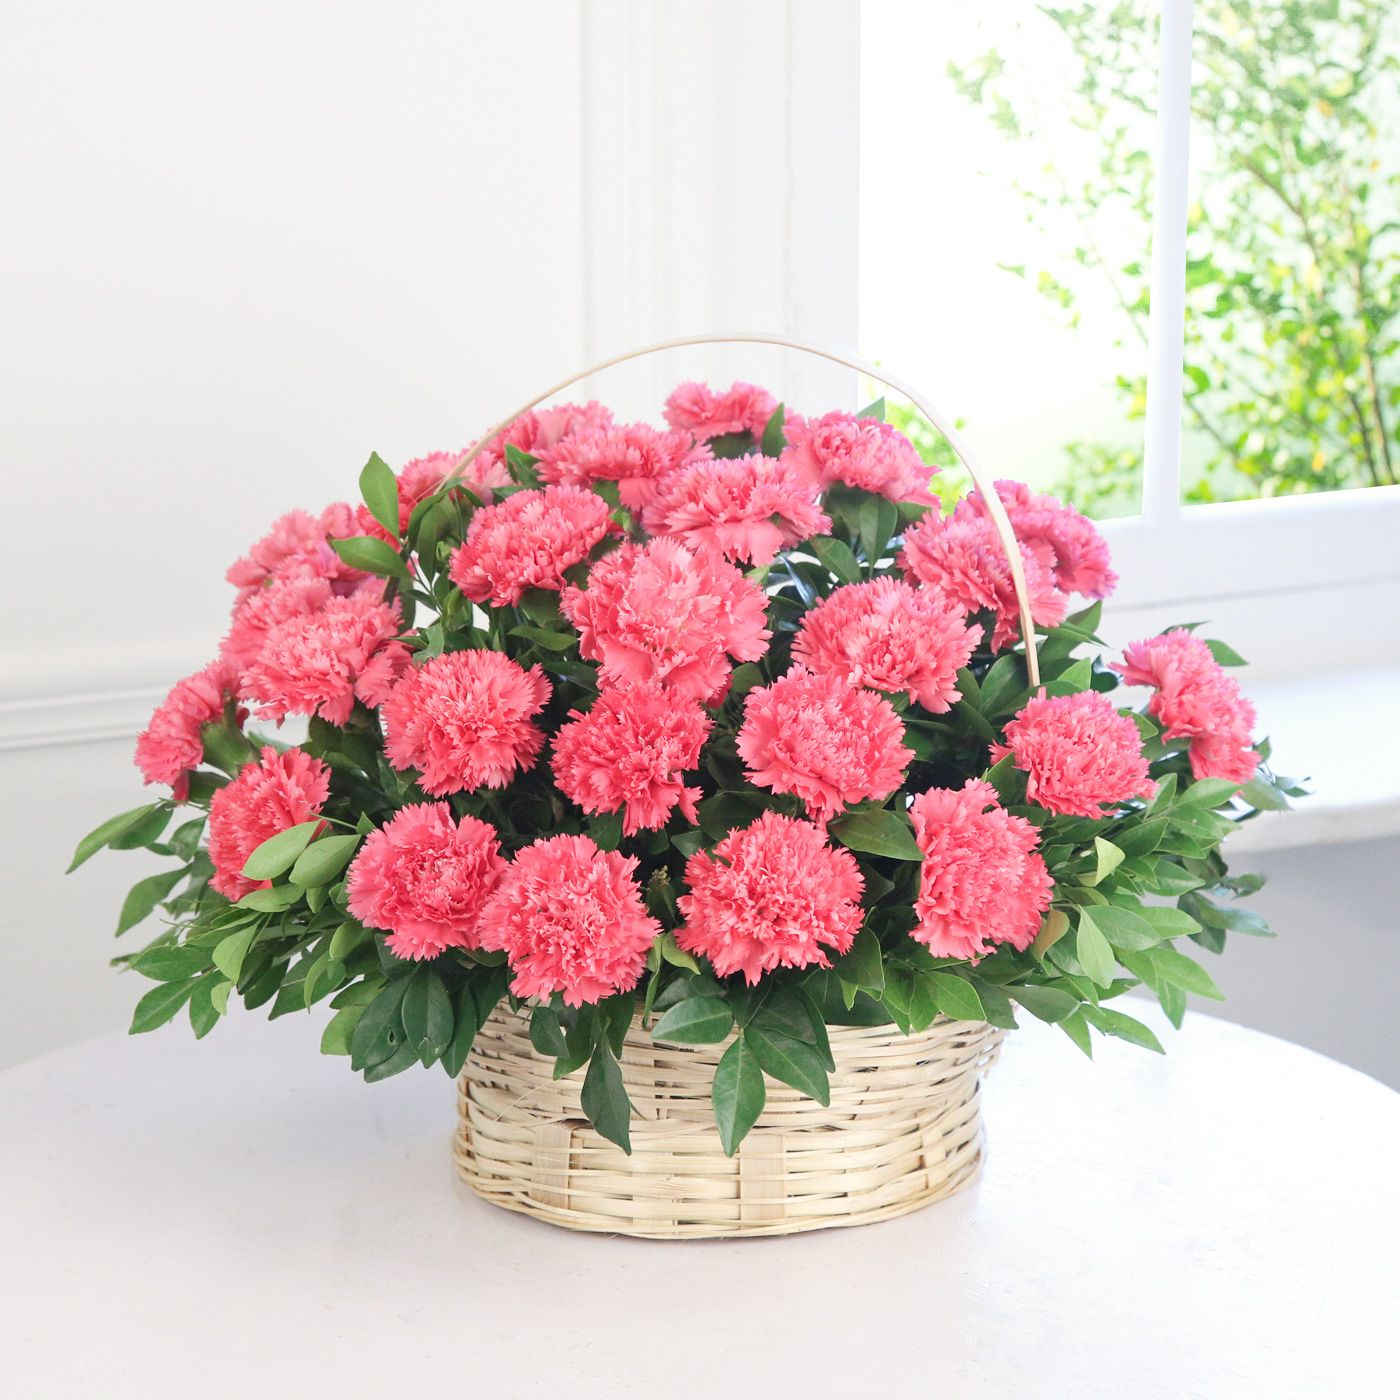 Send Flowers to Mumbai Flower bouquet delivery, Flower